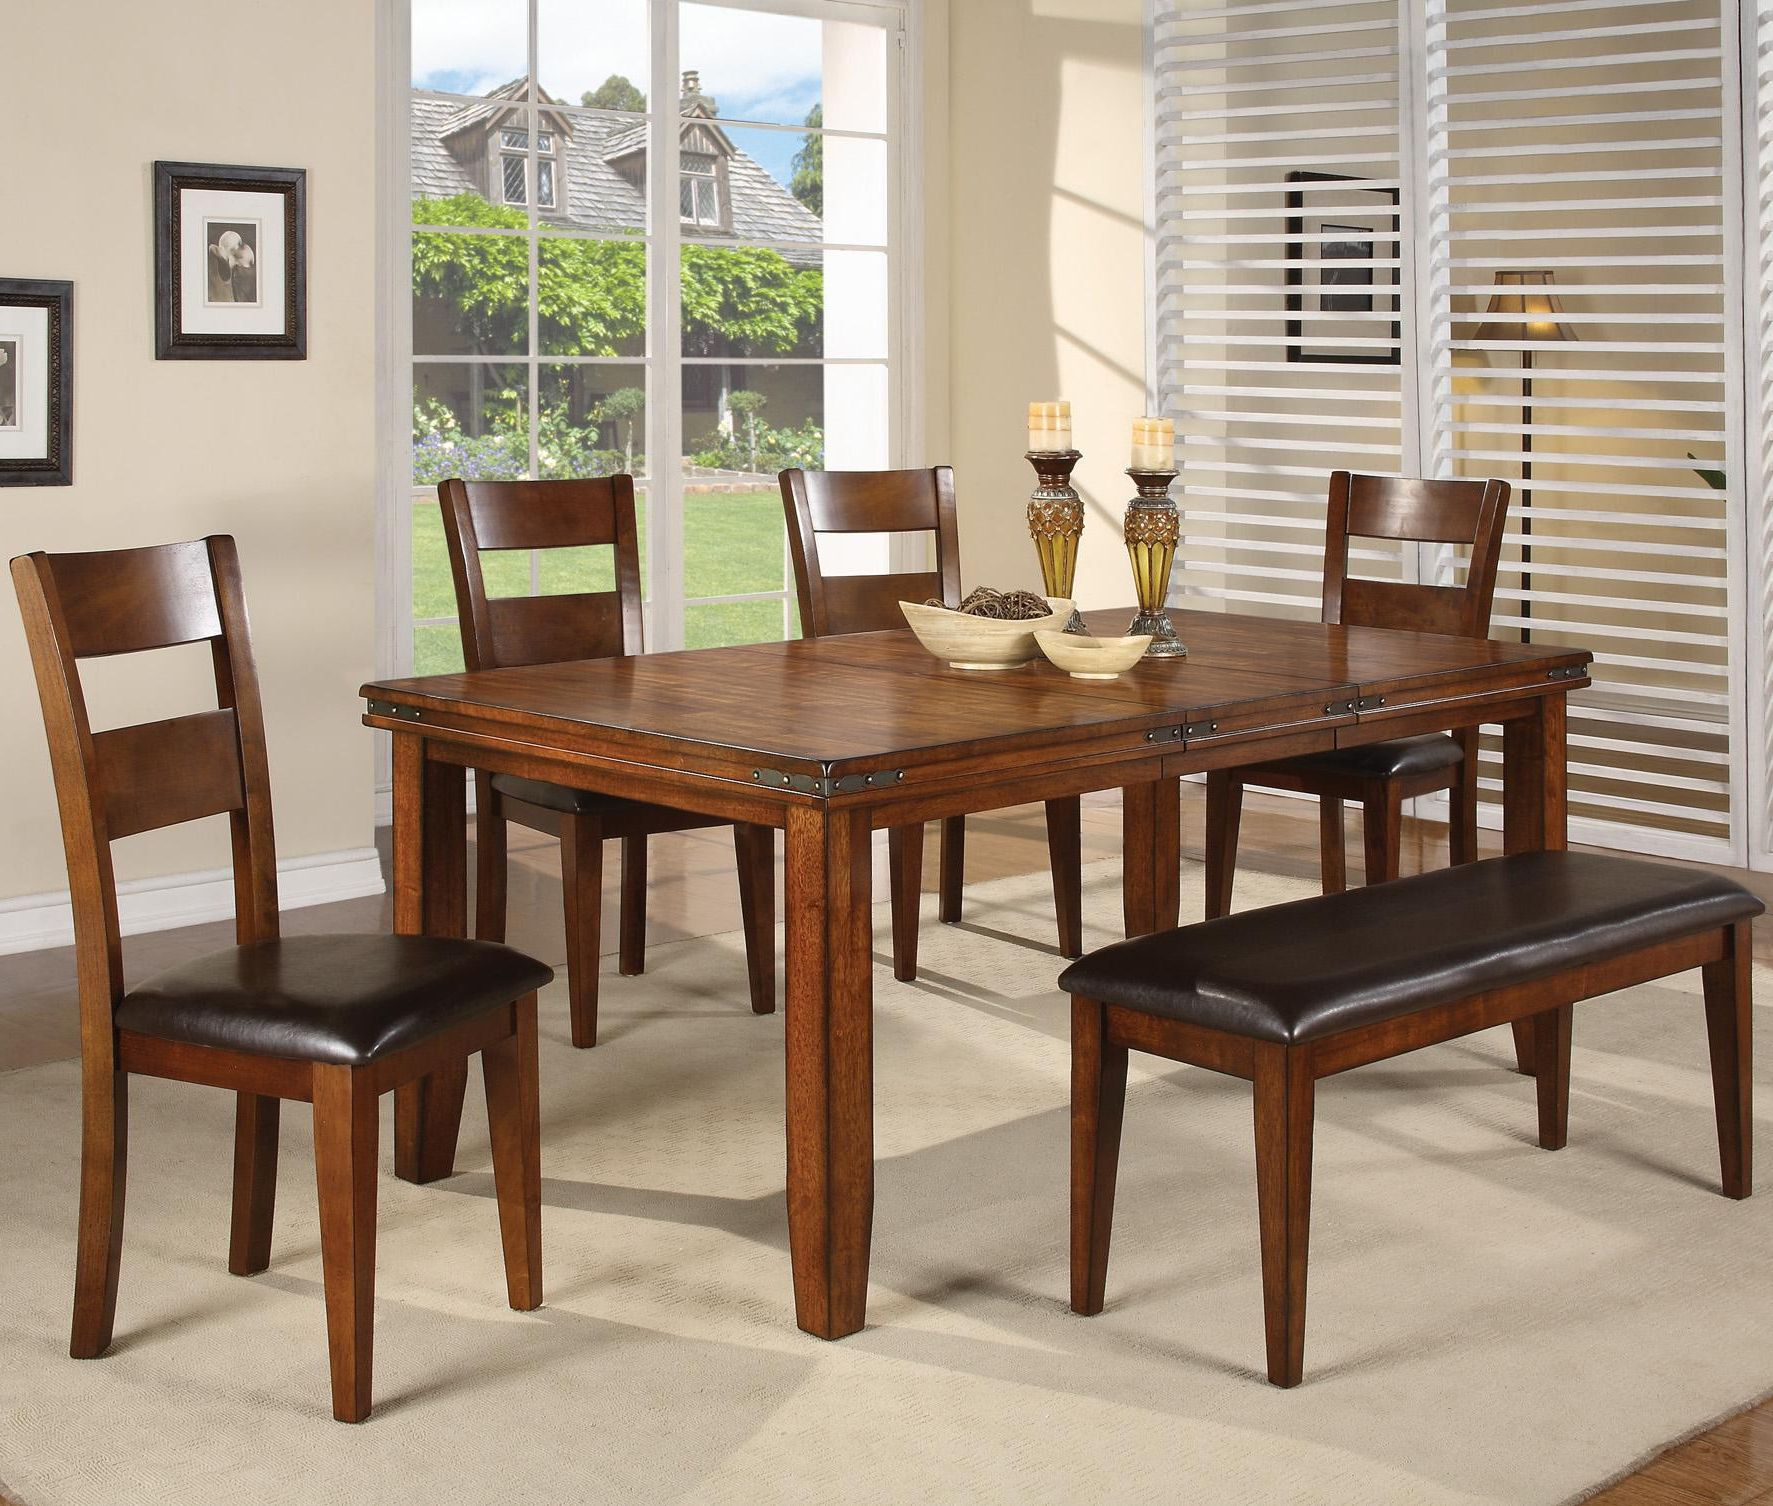 Figaro 5 Piece Dinette Table And 4 Chairs 689 00 Table 459 00 42 X 60 78 X 30 H 18 Leaf Cha Dining Table Dining Table Setting Furniture